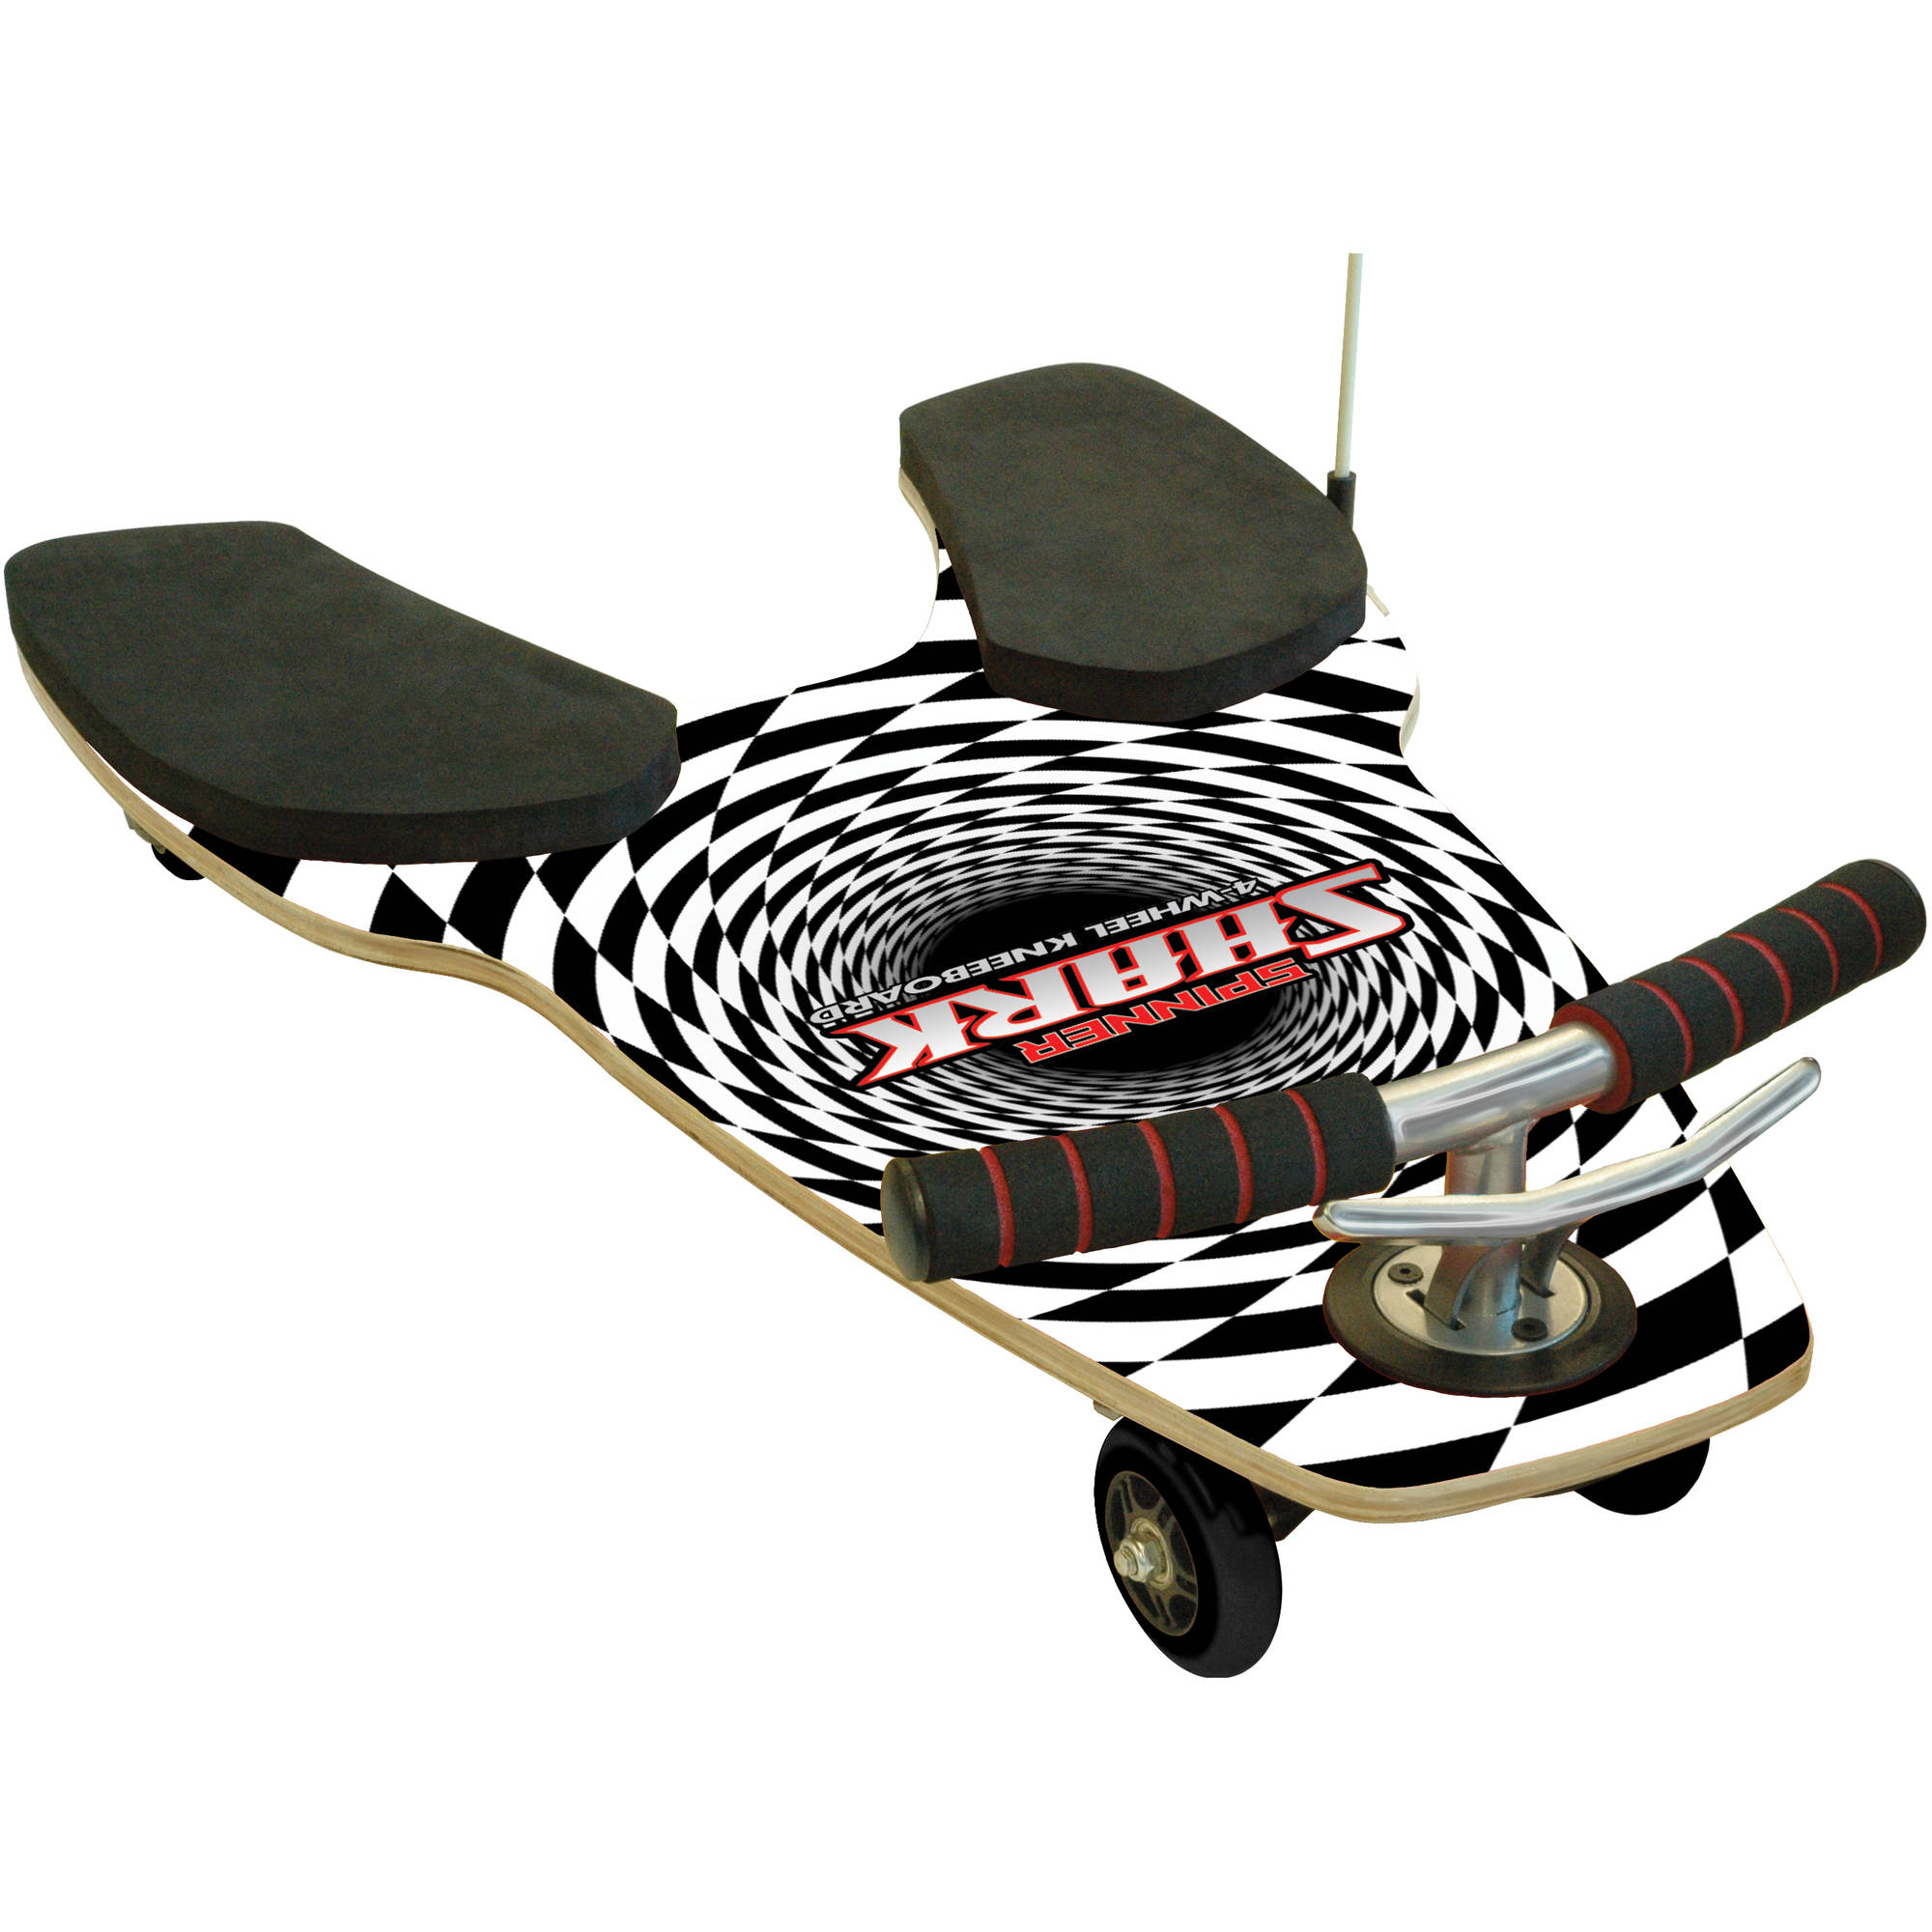 Fuzion Spinner Shark 4-Wheel Ride-On KneeBoard